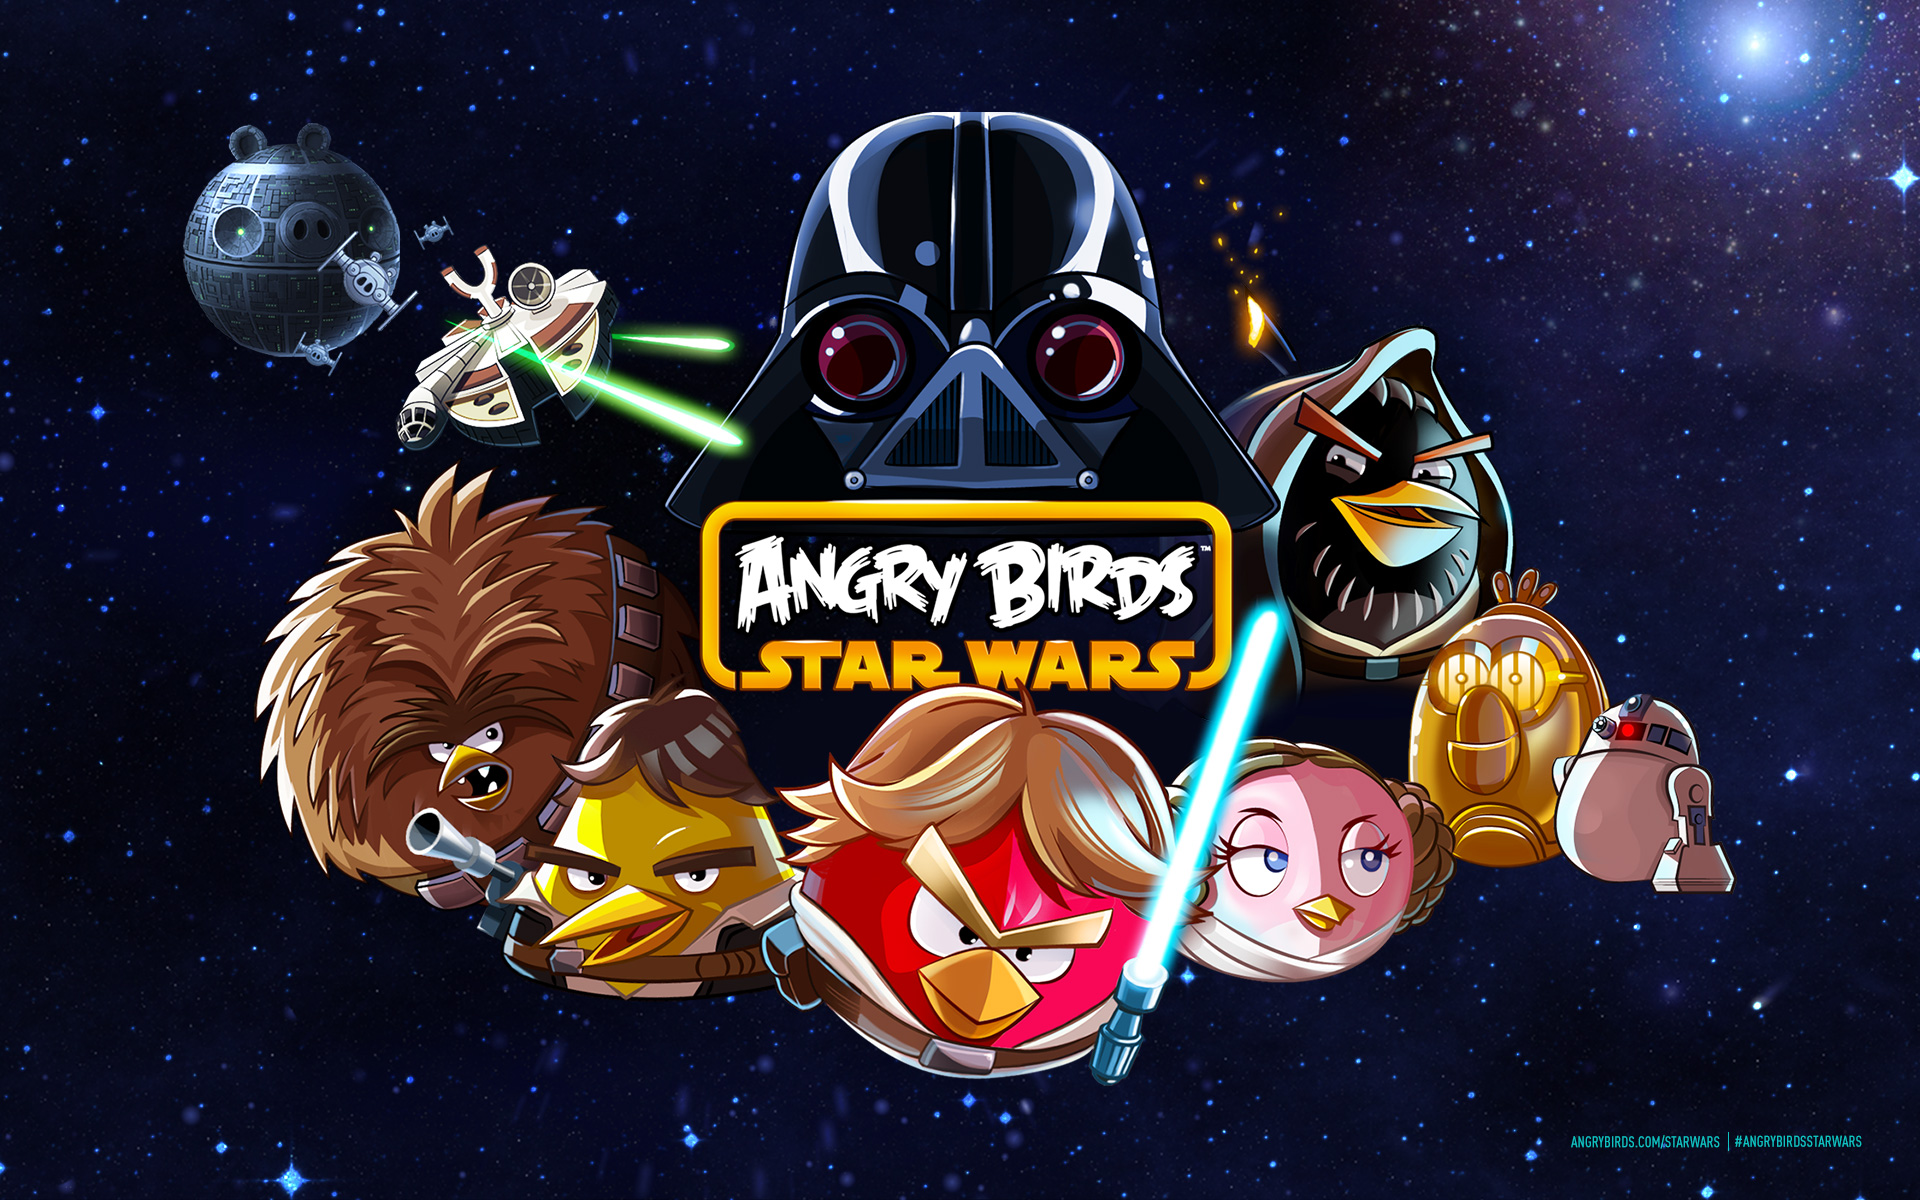 Must see Wallpaper Home Screen Star Wars - angry-birds-star-wars-wallpaper-angry-birds-32422194-1920-1200  Trends_553751.jpg